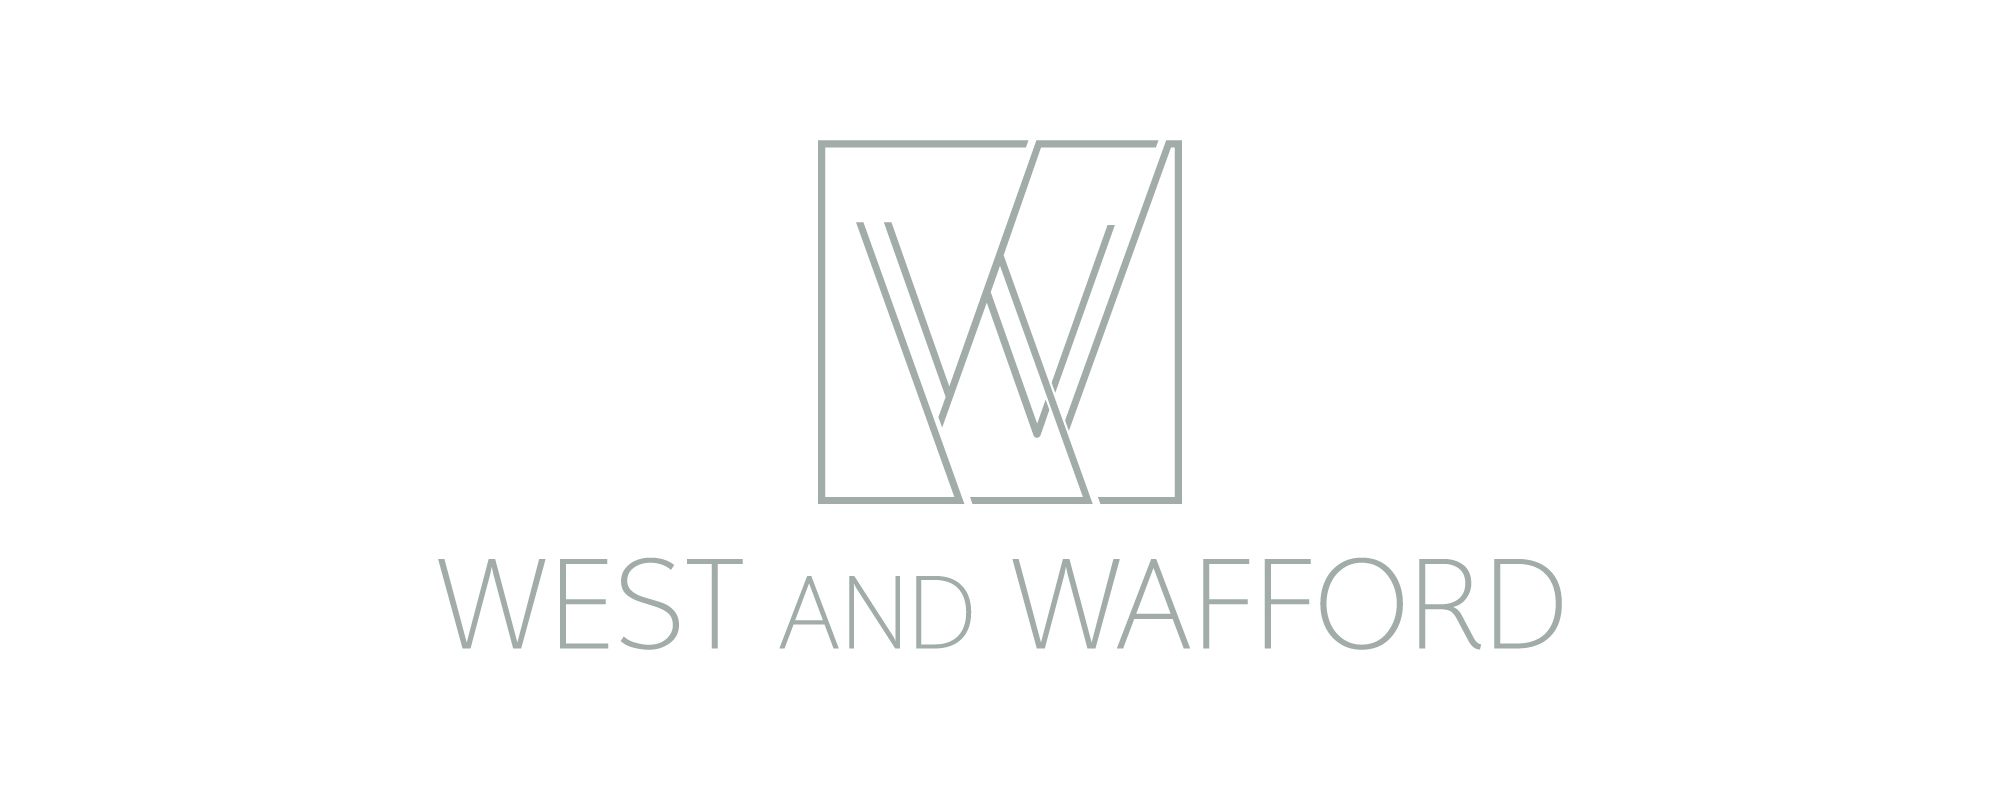 West and Wafford